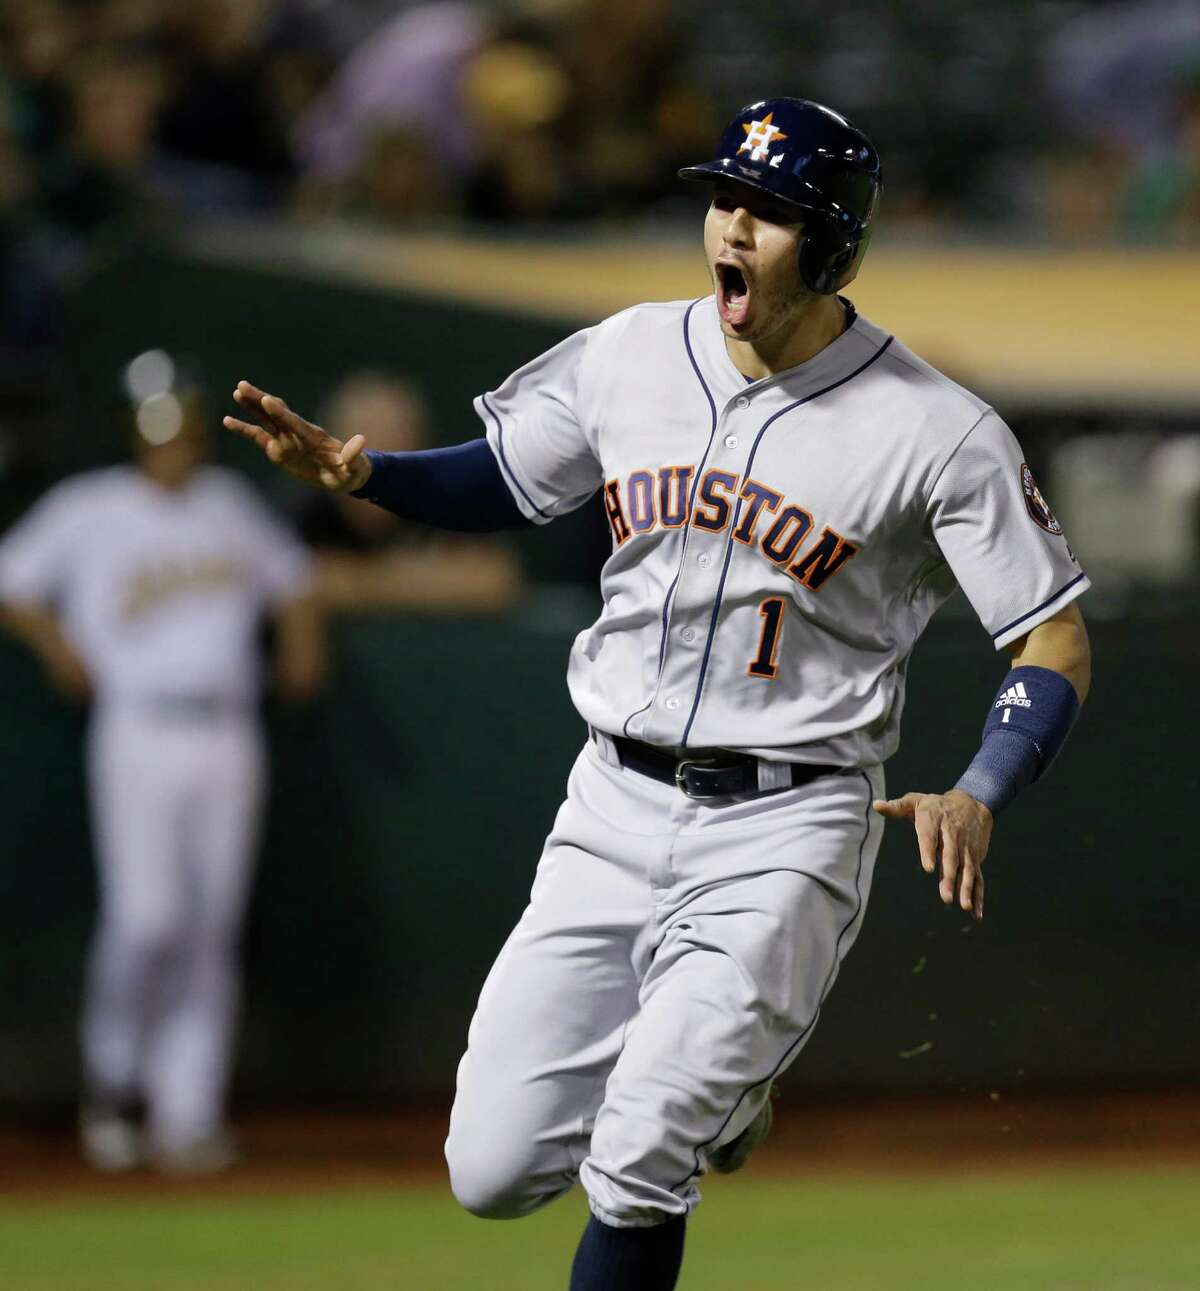 Houston Astros' Carlos Correa celebrates after scoring against the Oakland Athletics' in the ninth inning of a baseball game Monday, Sept. 19, 2016, in Oakland, Calif. (AP Photo/Ben Margot)